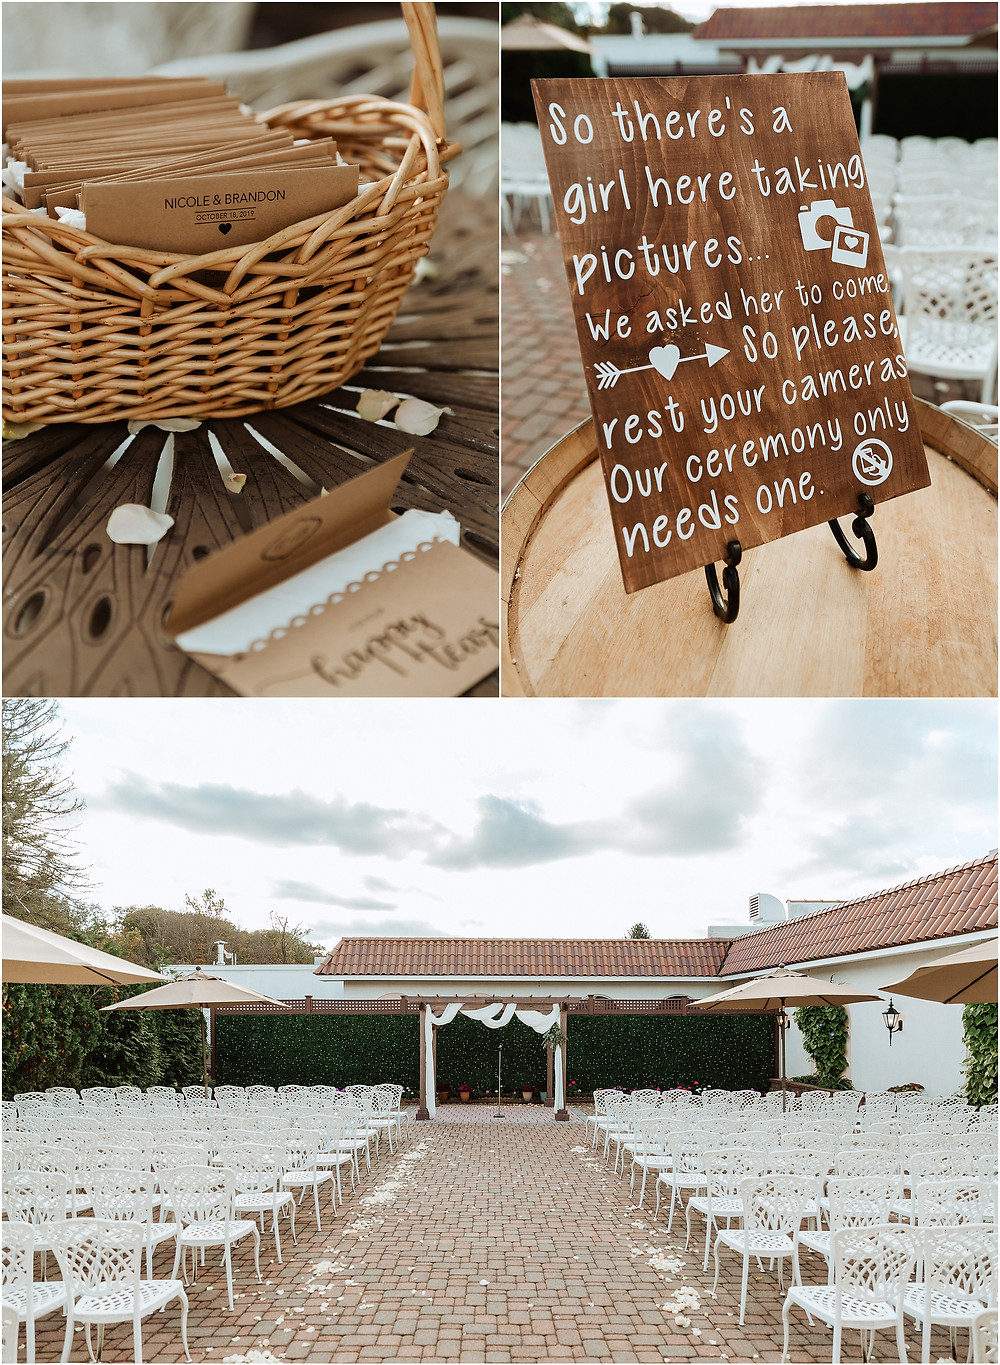 Ceremony Details at The Reserve, Perona Farms Wedding